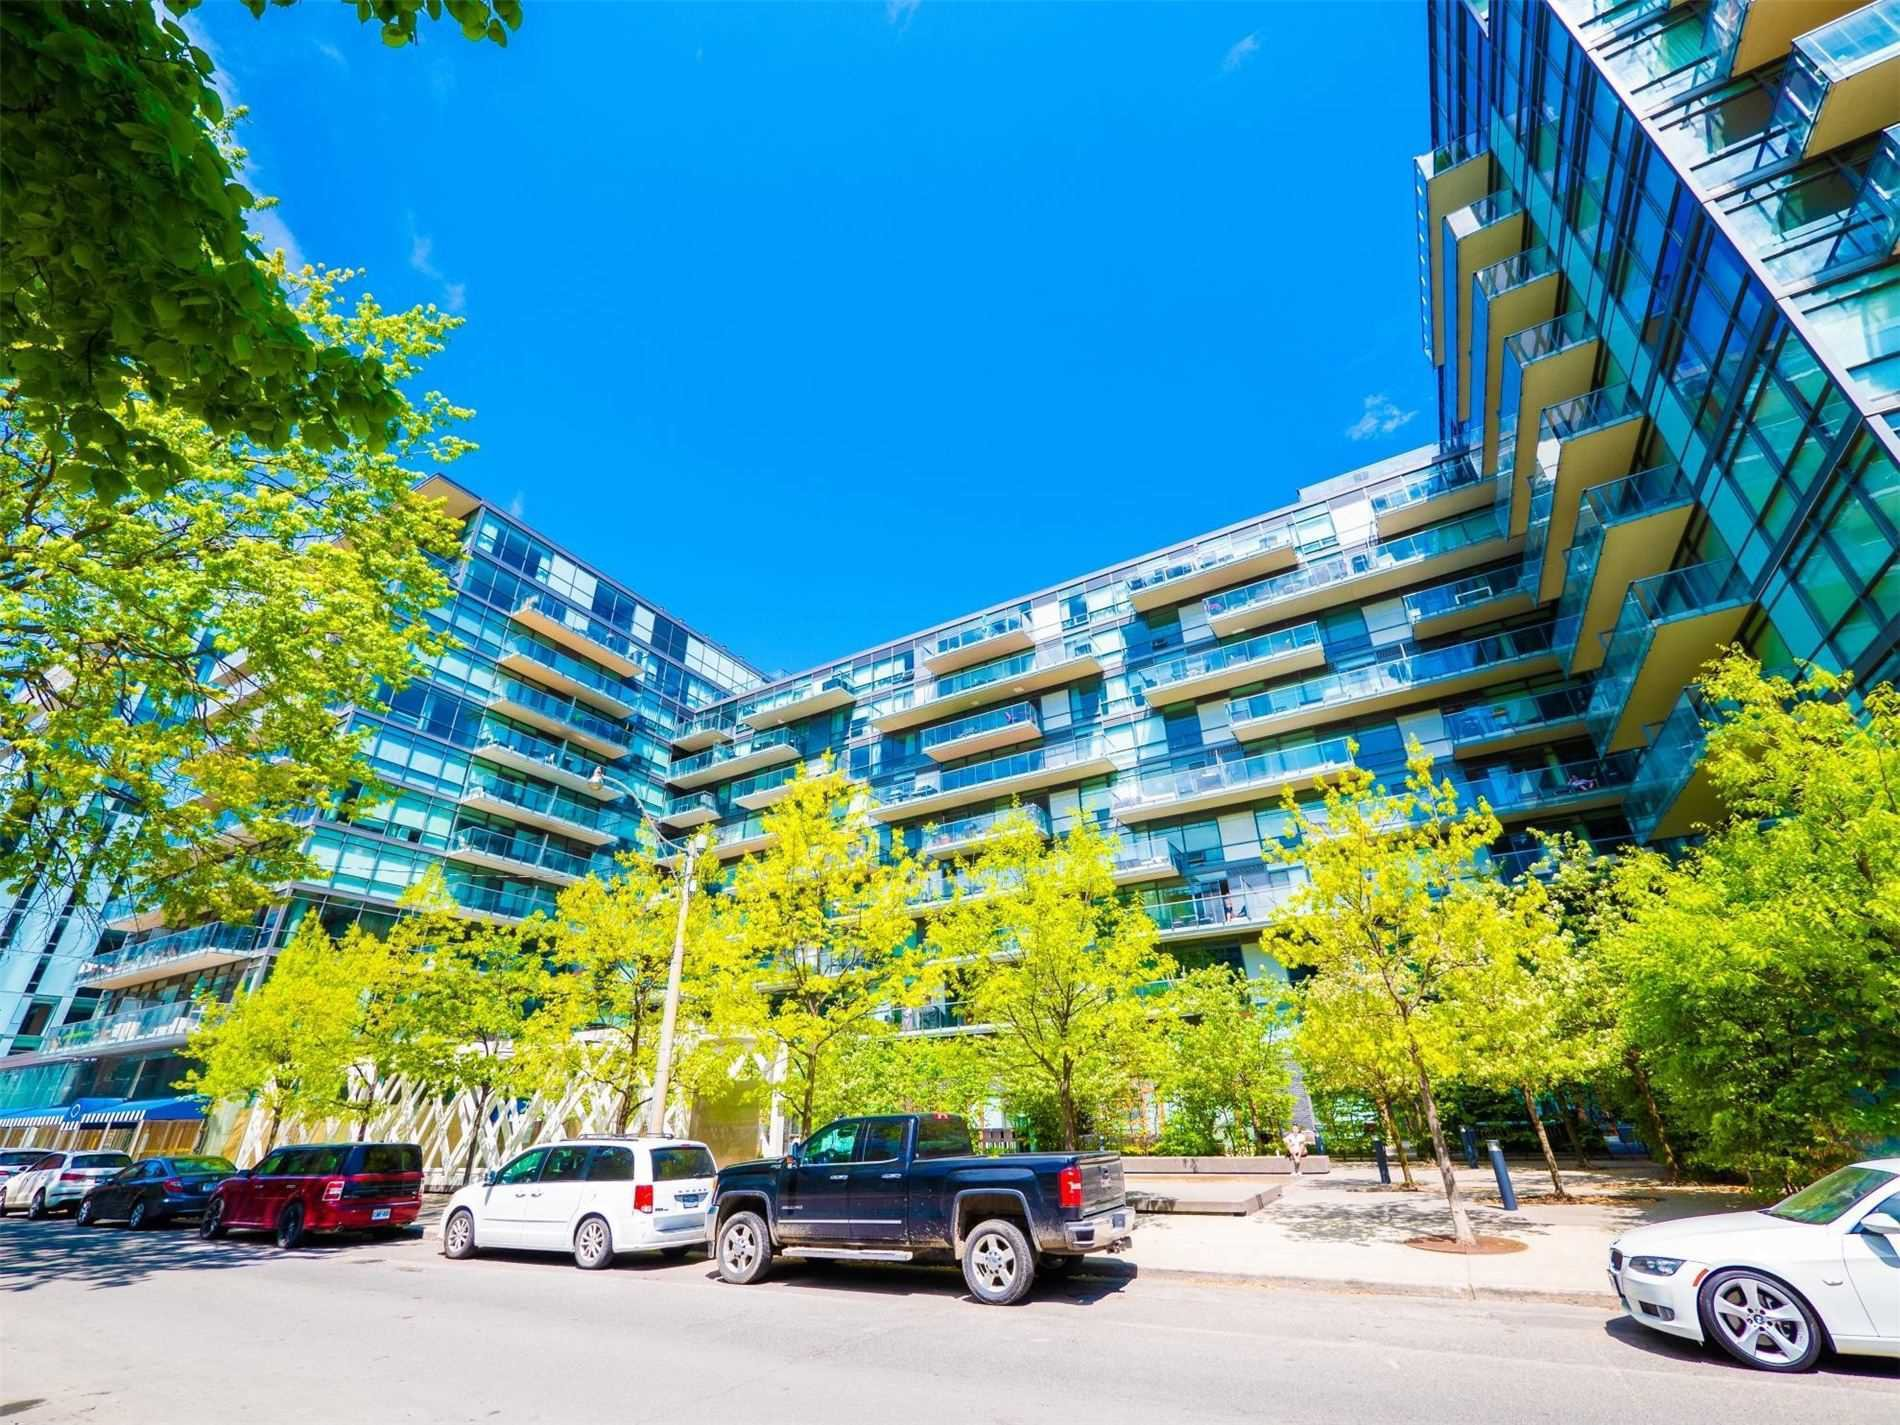 Main Photo: 428 55 Stewart Street in Toronto: Waterfront Communities C1 Condo for sale (Toronto C01)  : MLS®# C4855933